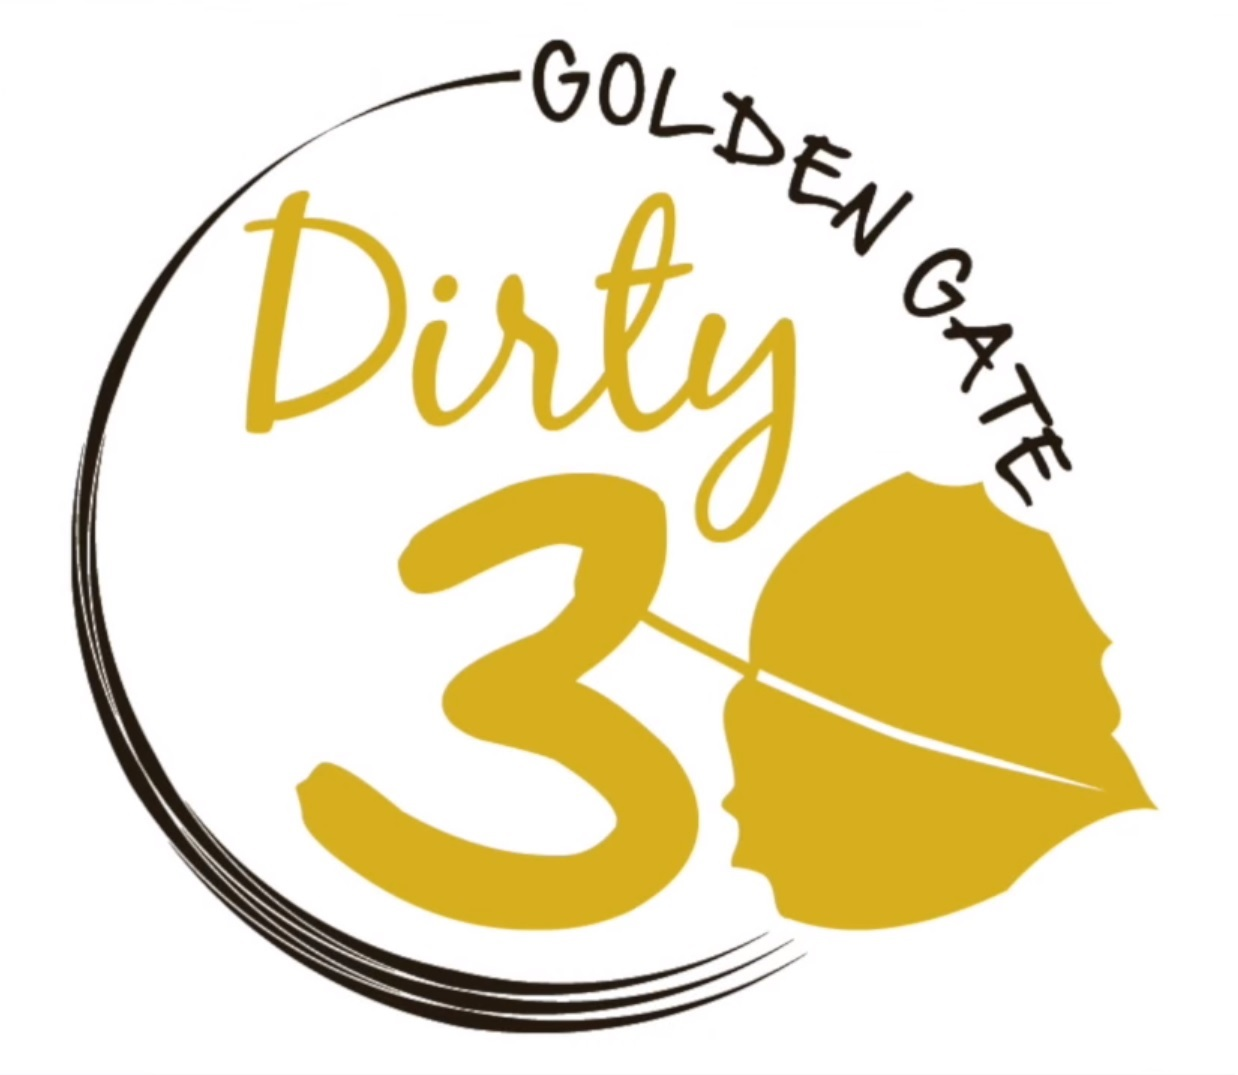 Golden gate dirty 30 exploring the rockies on june 3rd i ran in the 9th annual golden gate dirty 30 trail race it was my second ultra race and one i could definitely see going back to run again biocorpaavc Choice Image